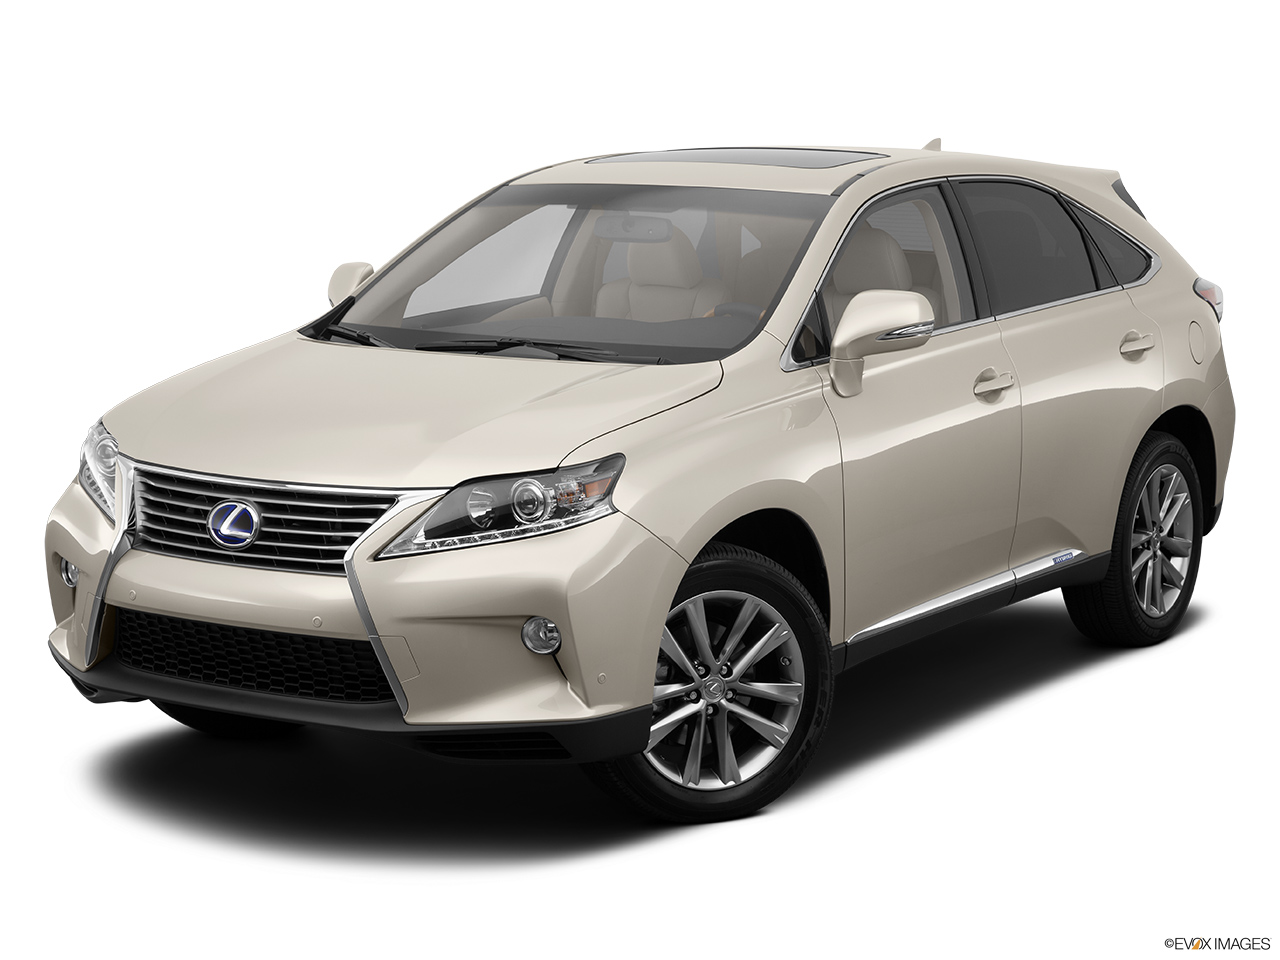 2014 lexus rx 450h awd. Black Bedroom Furniture Sets. Home Design Ideas